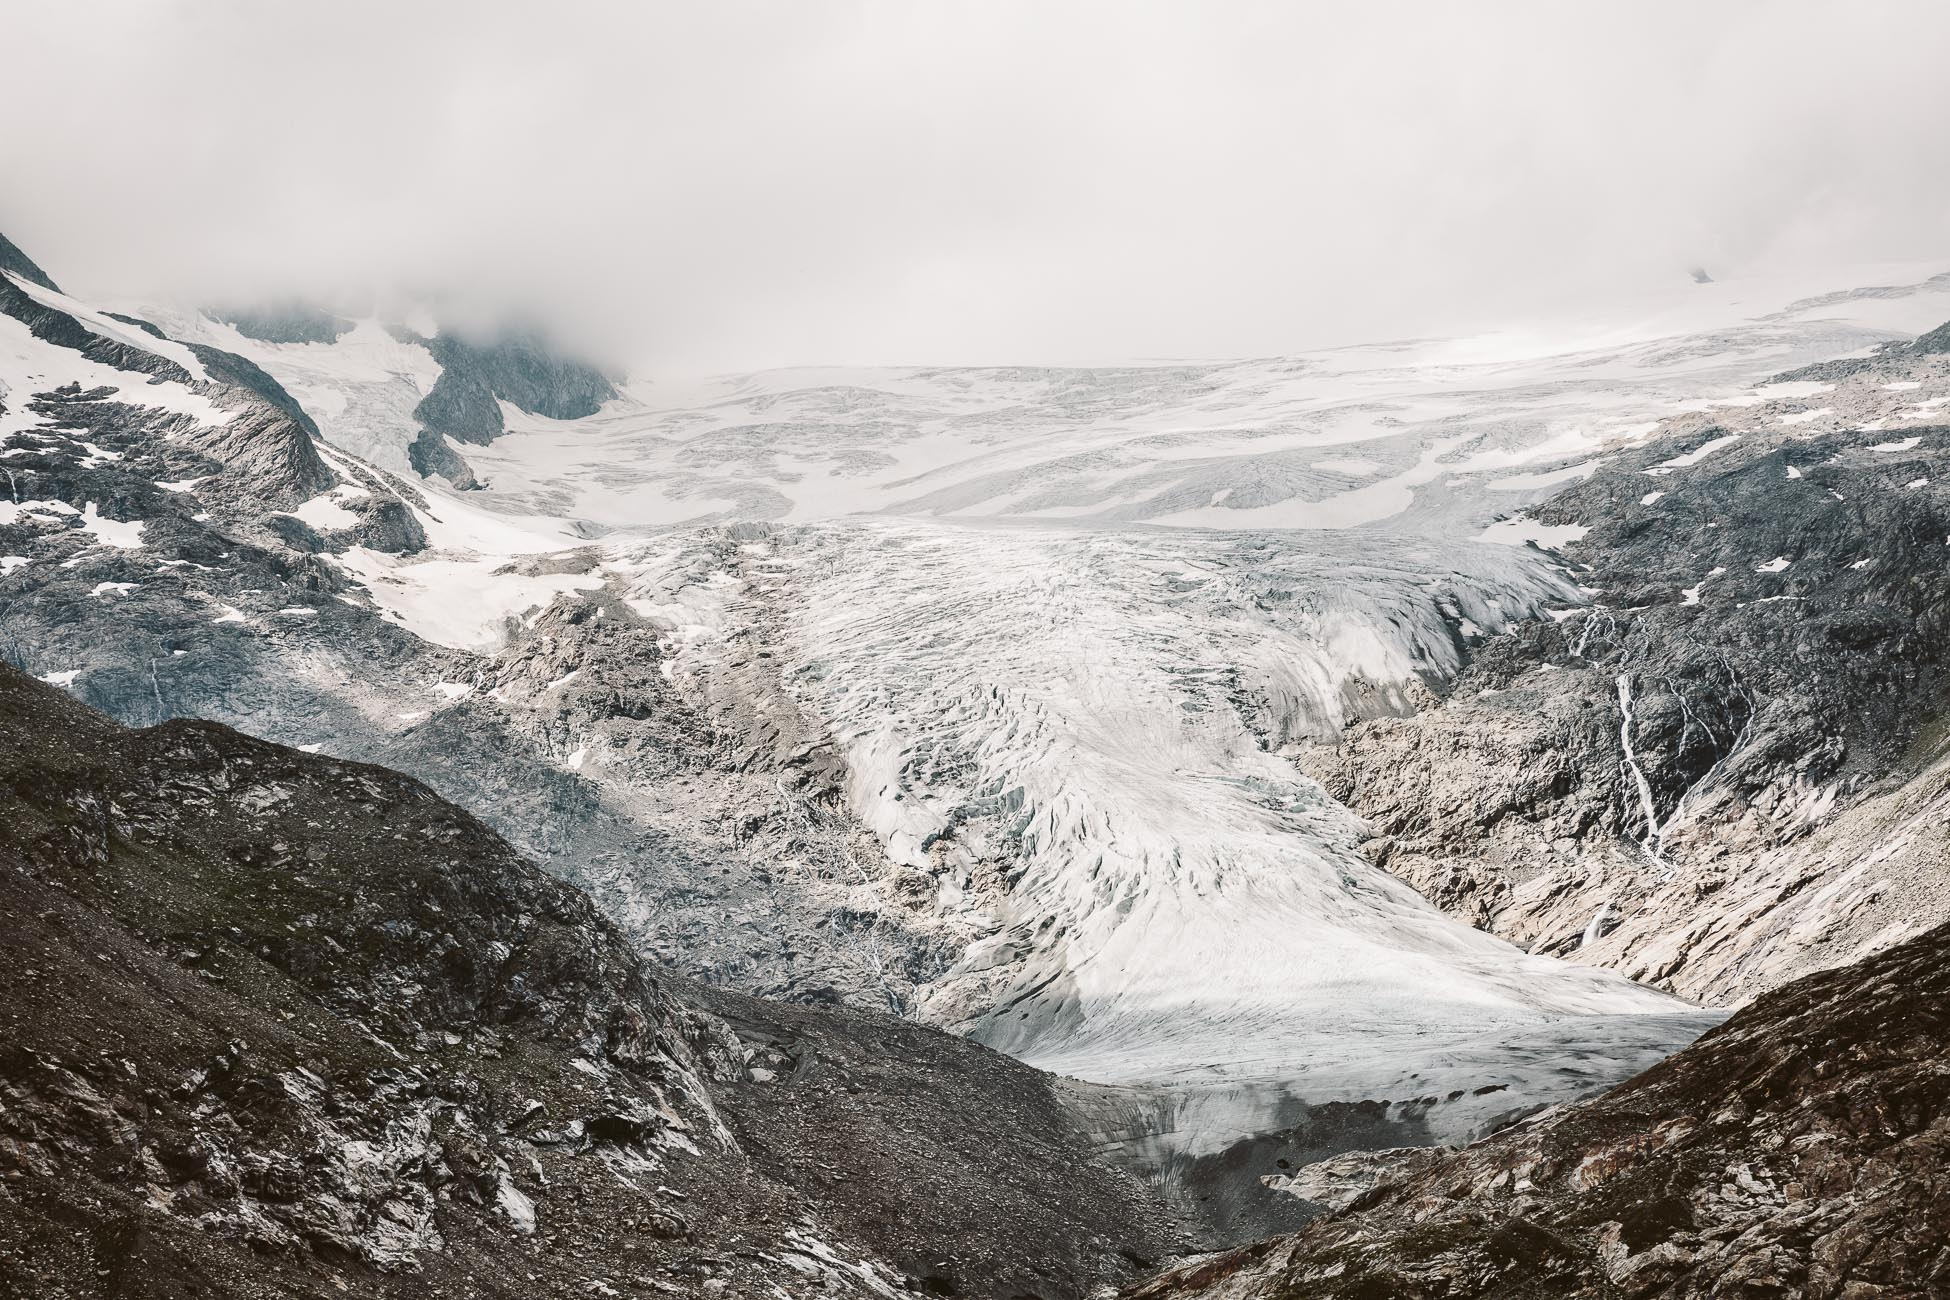 Schlatenkees Glacier at National Park Hohe Tauern